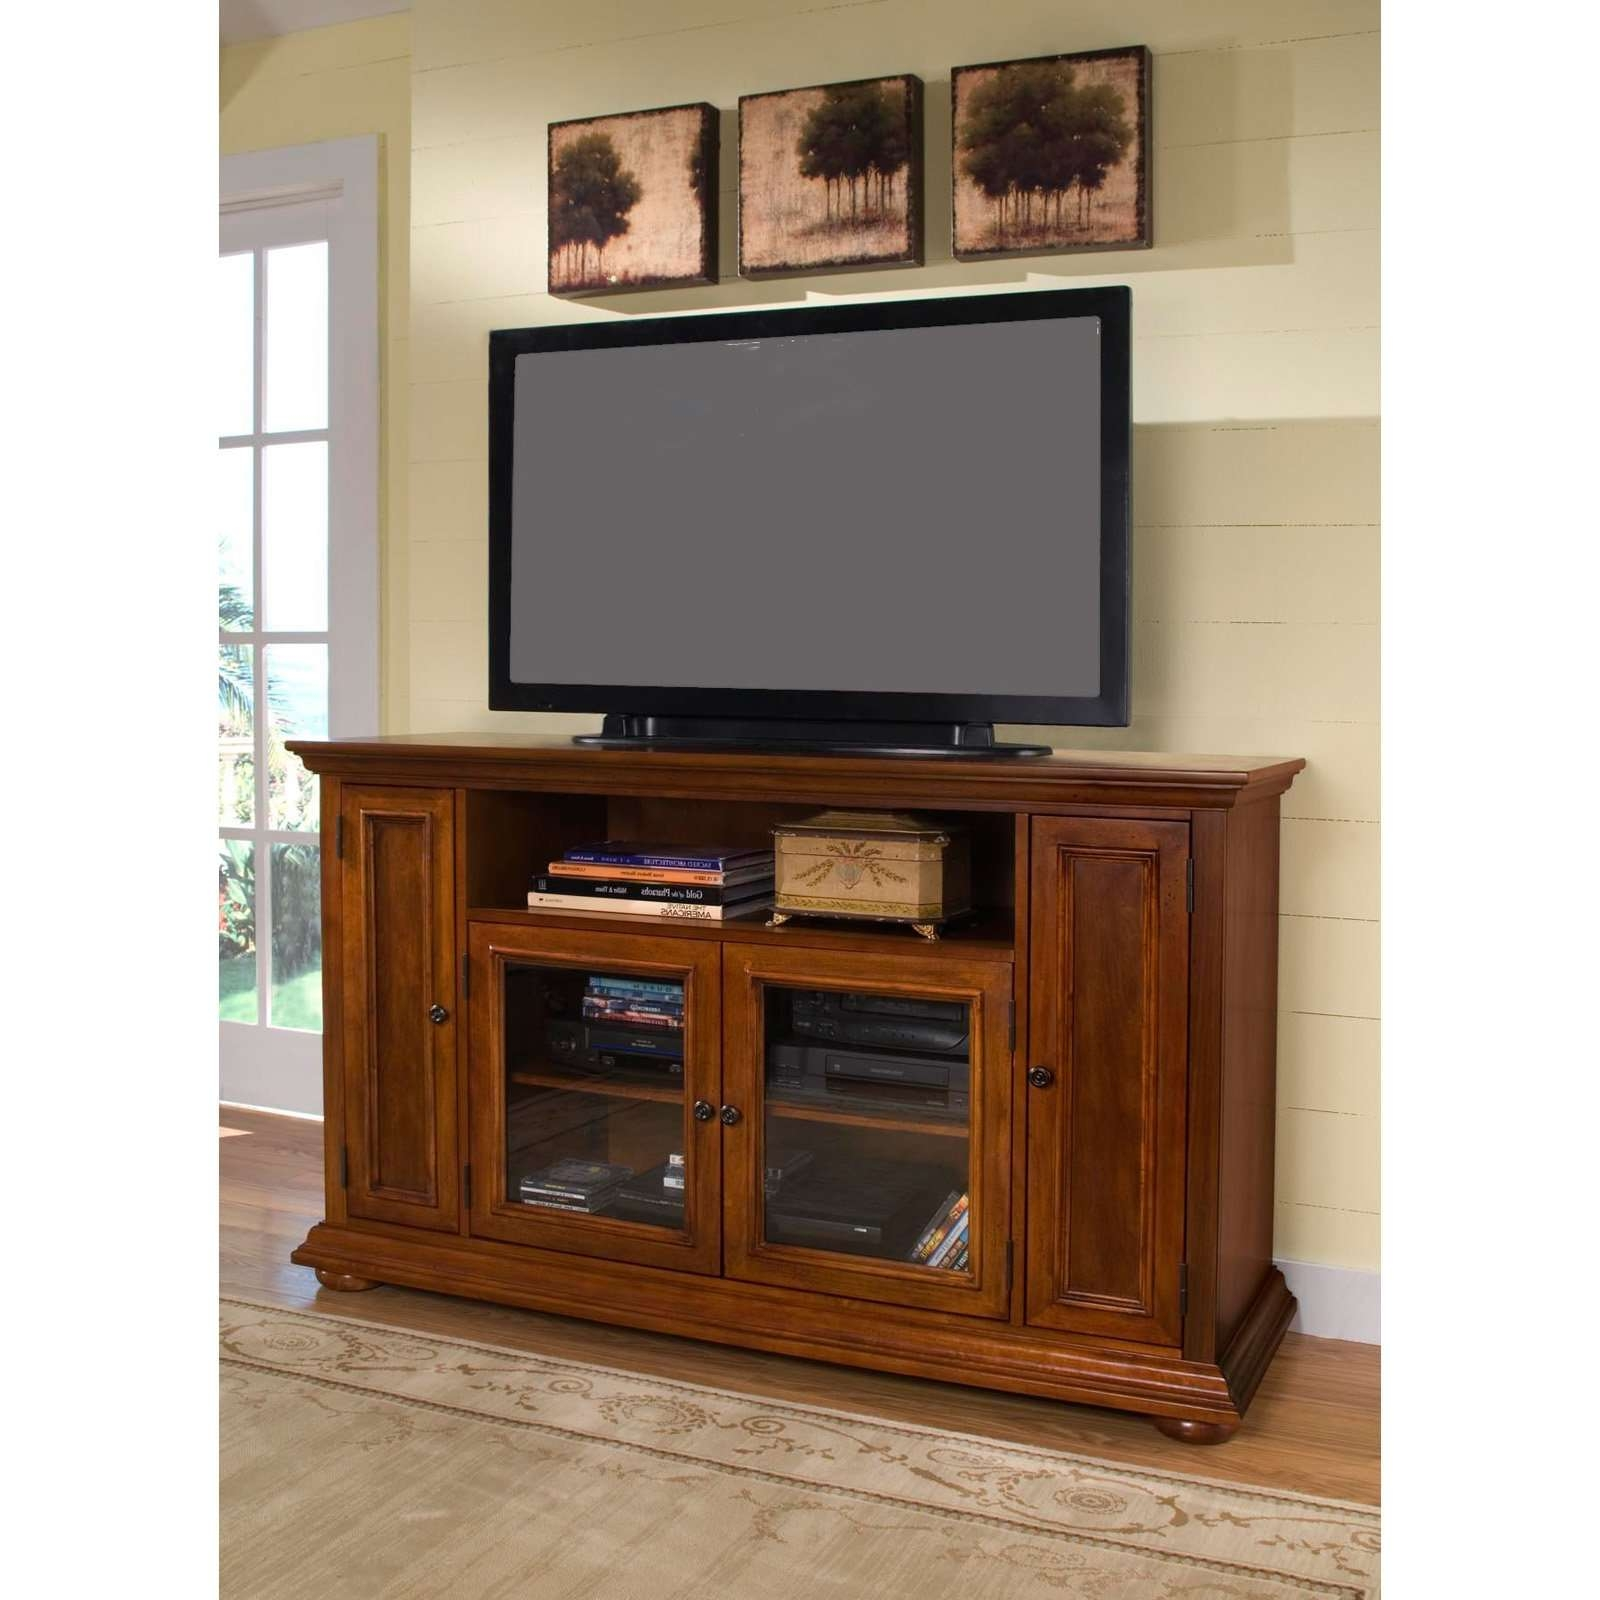 Pl Modern Wooden Television Stands Glass Doors And Drawers Dark With Wooden Tv Cabinets (View 13 of 20)